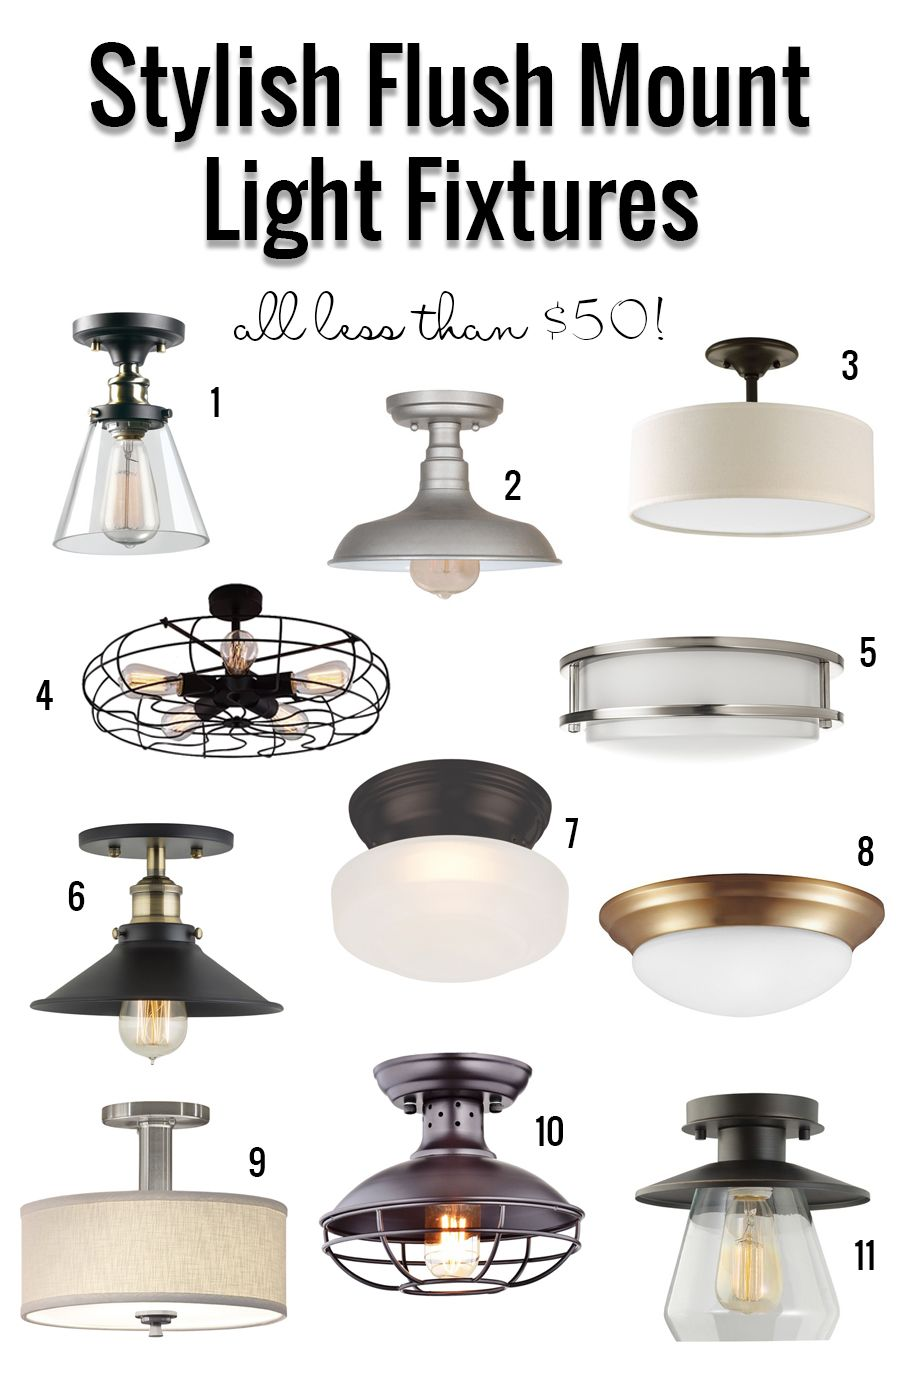 Stylish Flush Mount Light Fixtures Under $50 (Remodelaholic) | Wohnen